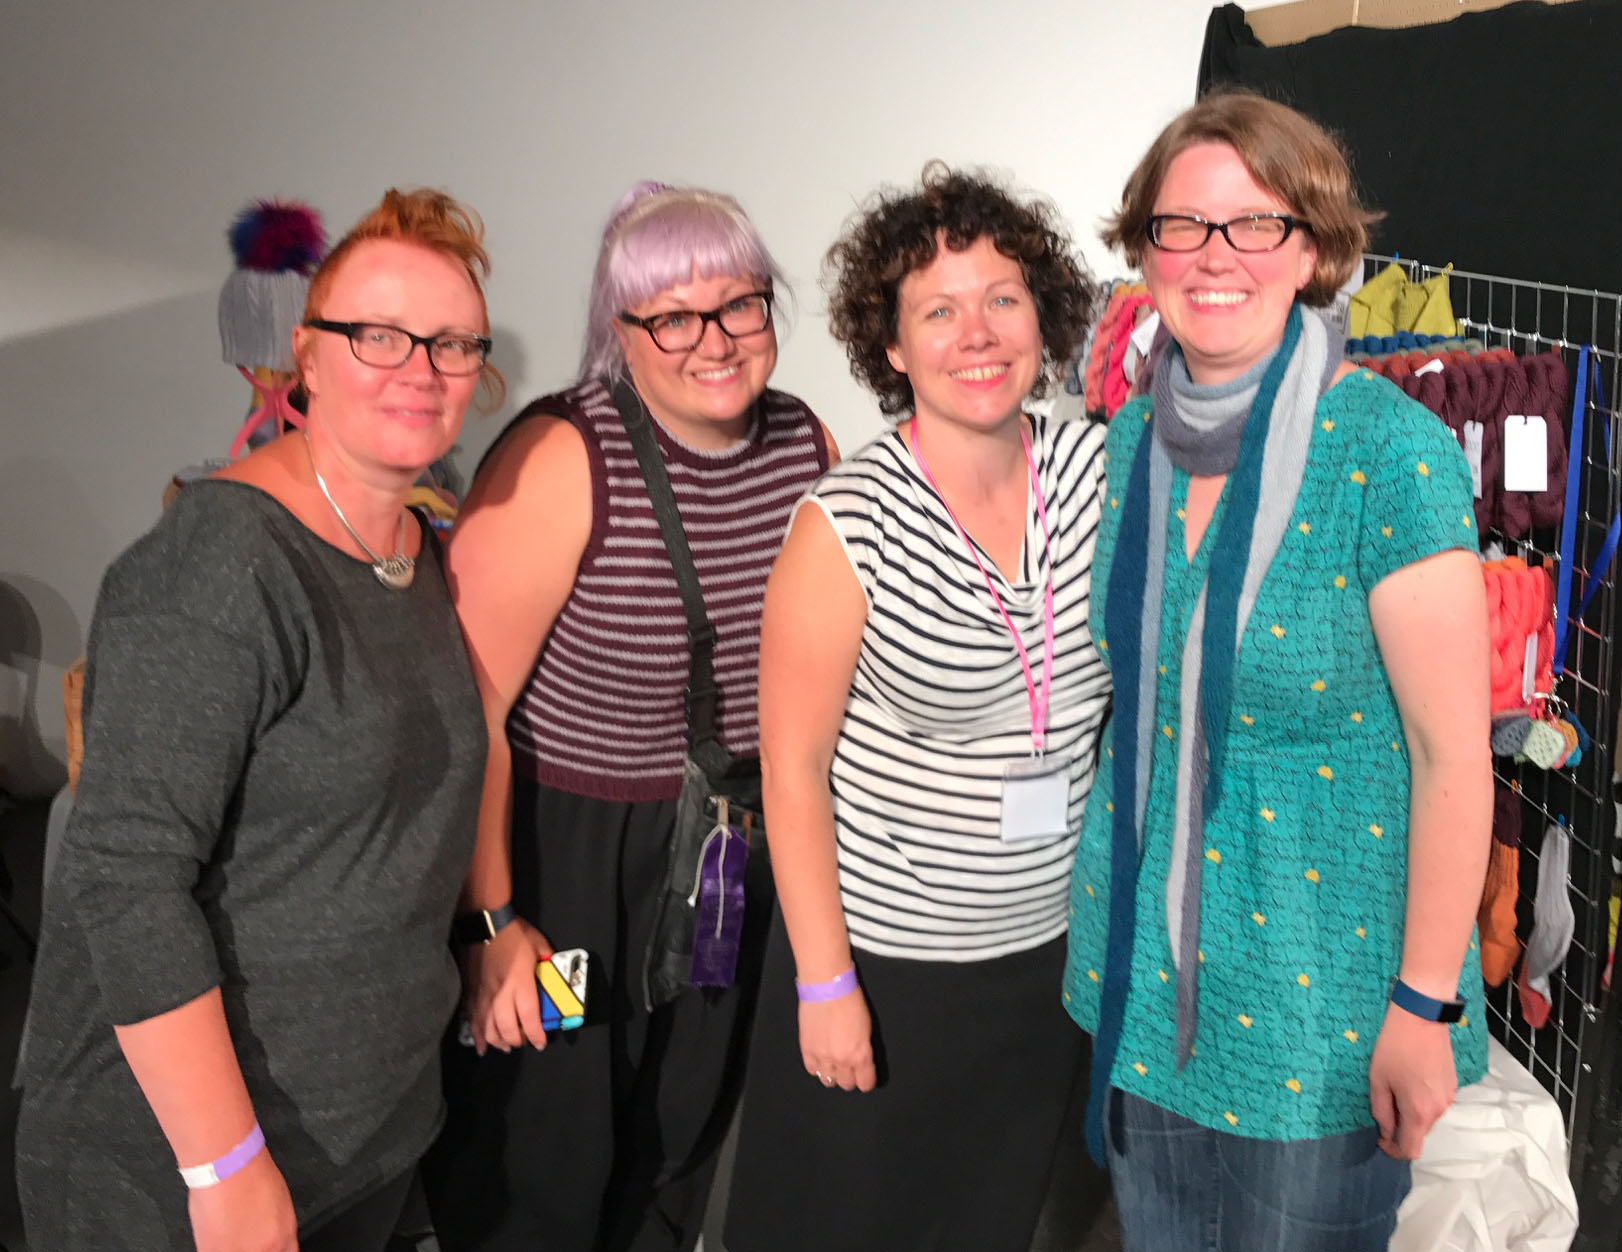 Left to right: Woolly Wormhead, Rachel Coopey, Sarah Hatton and me (Jen Arnall-Culliford)